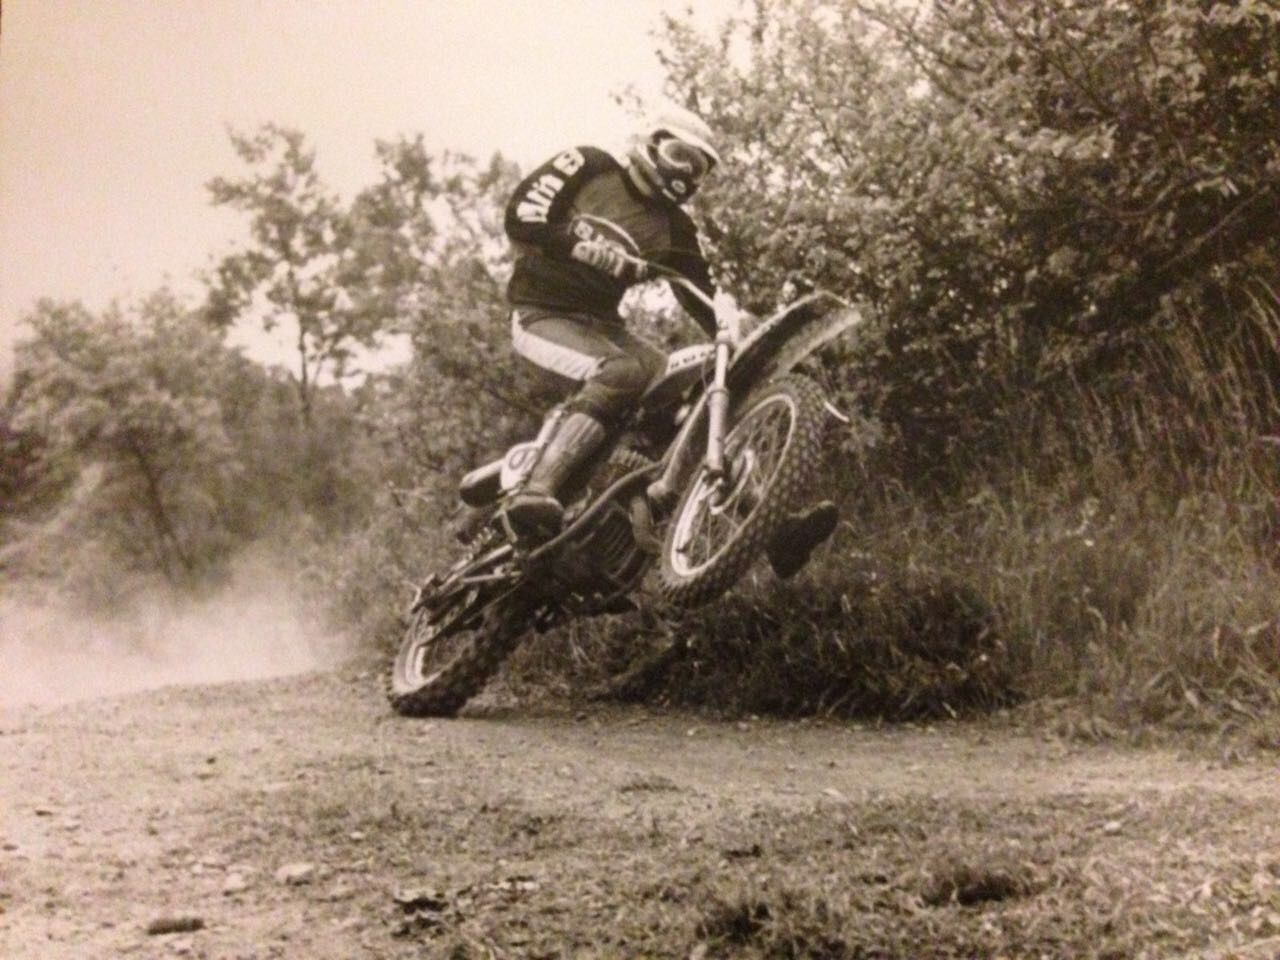 When Piero was young. Wish we had photos like that of ourselves. Gotta work on the wheelie.